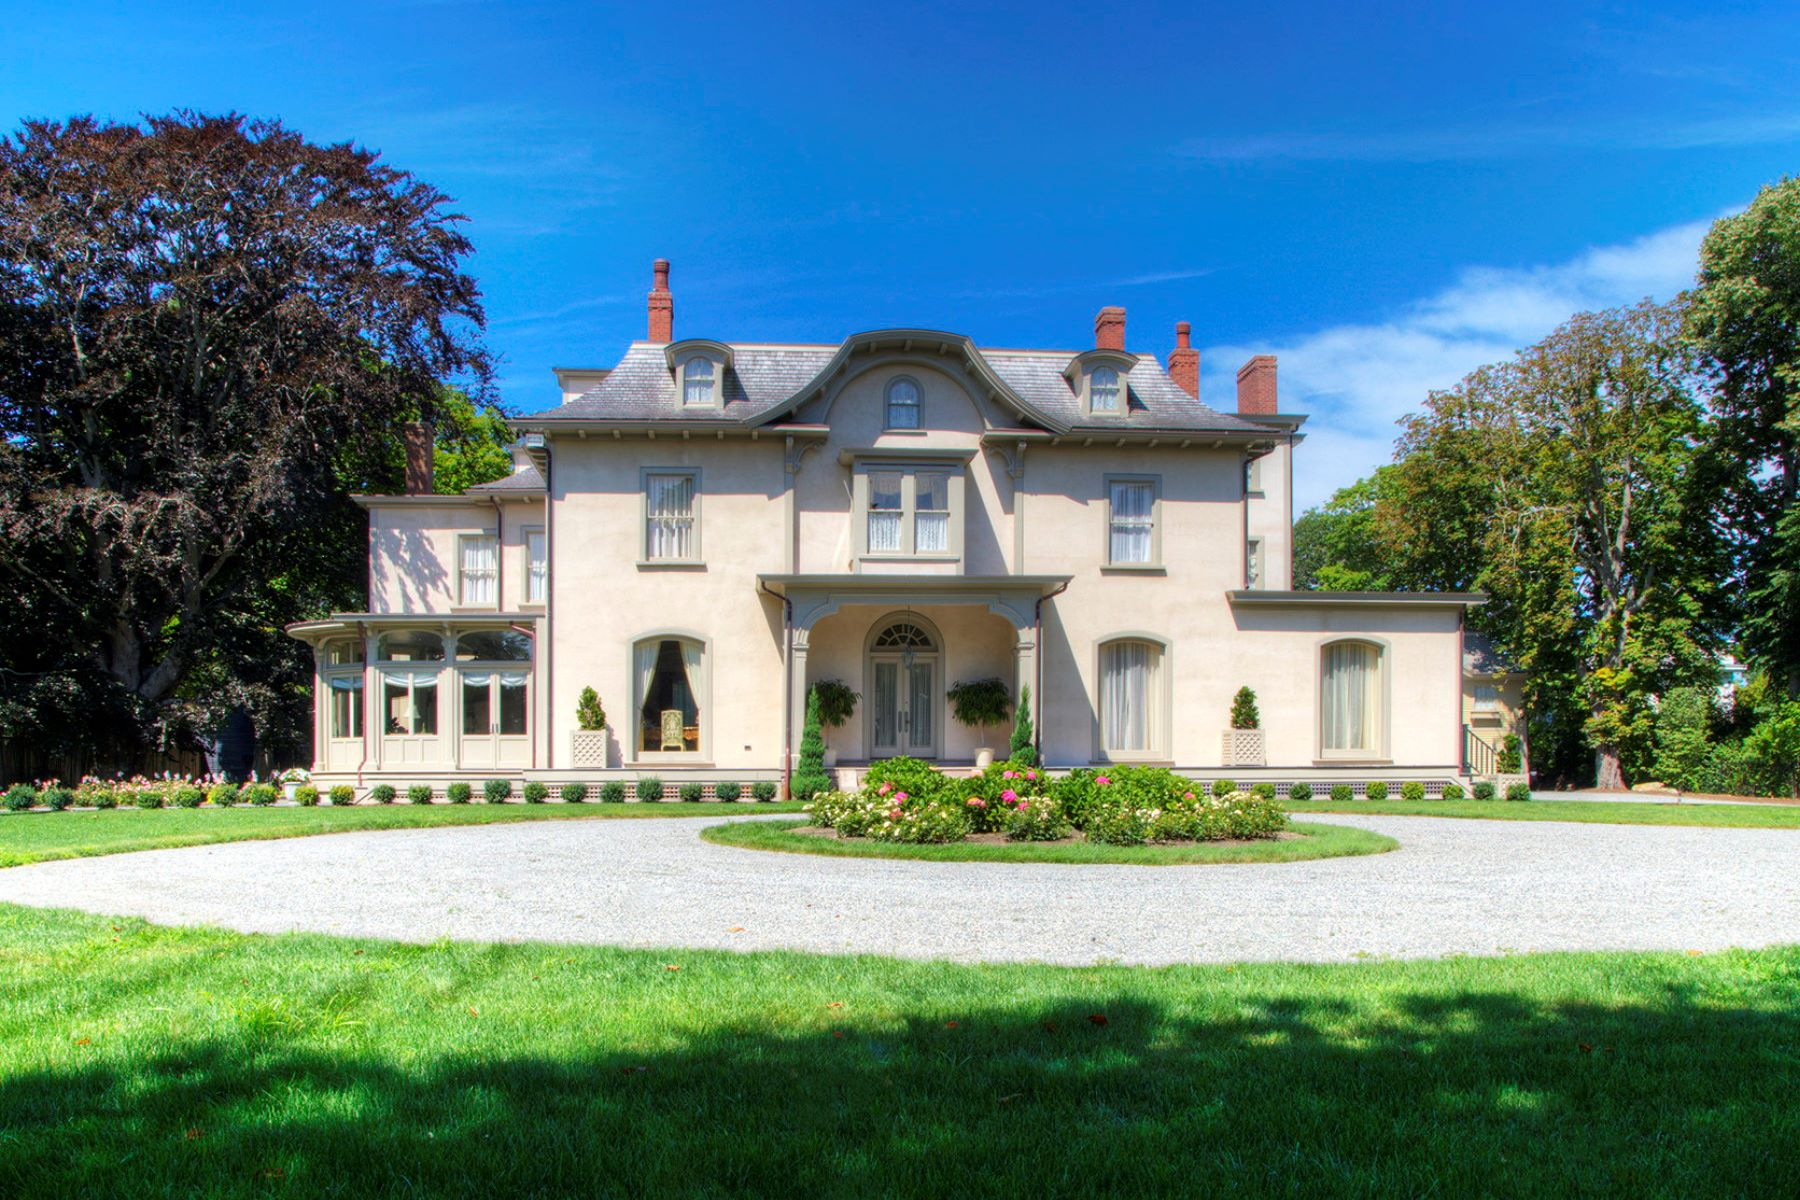 Single Family Home for Sale at Historic Quatrel on Bellevue 673 Bellevue Avenue Newport, 02840 United States